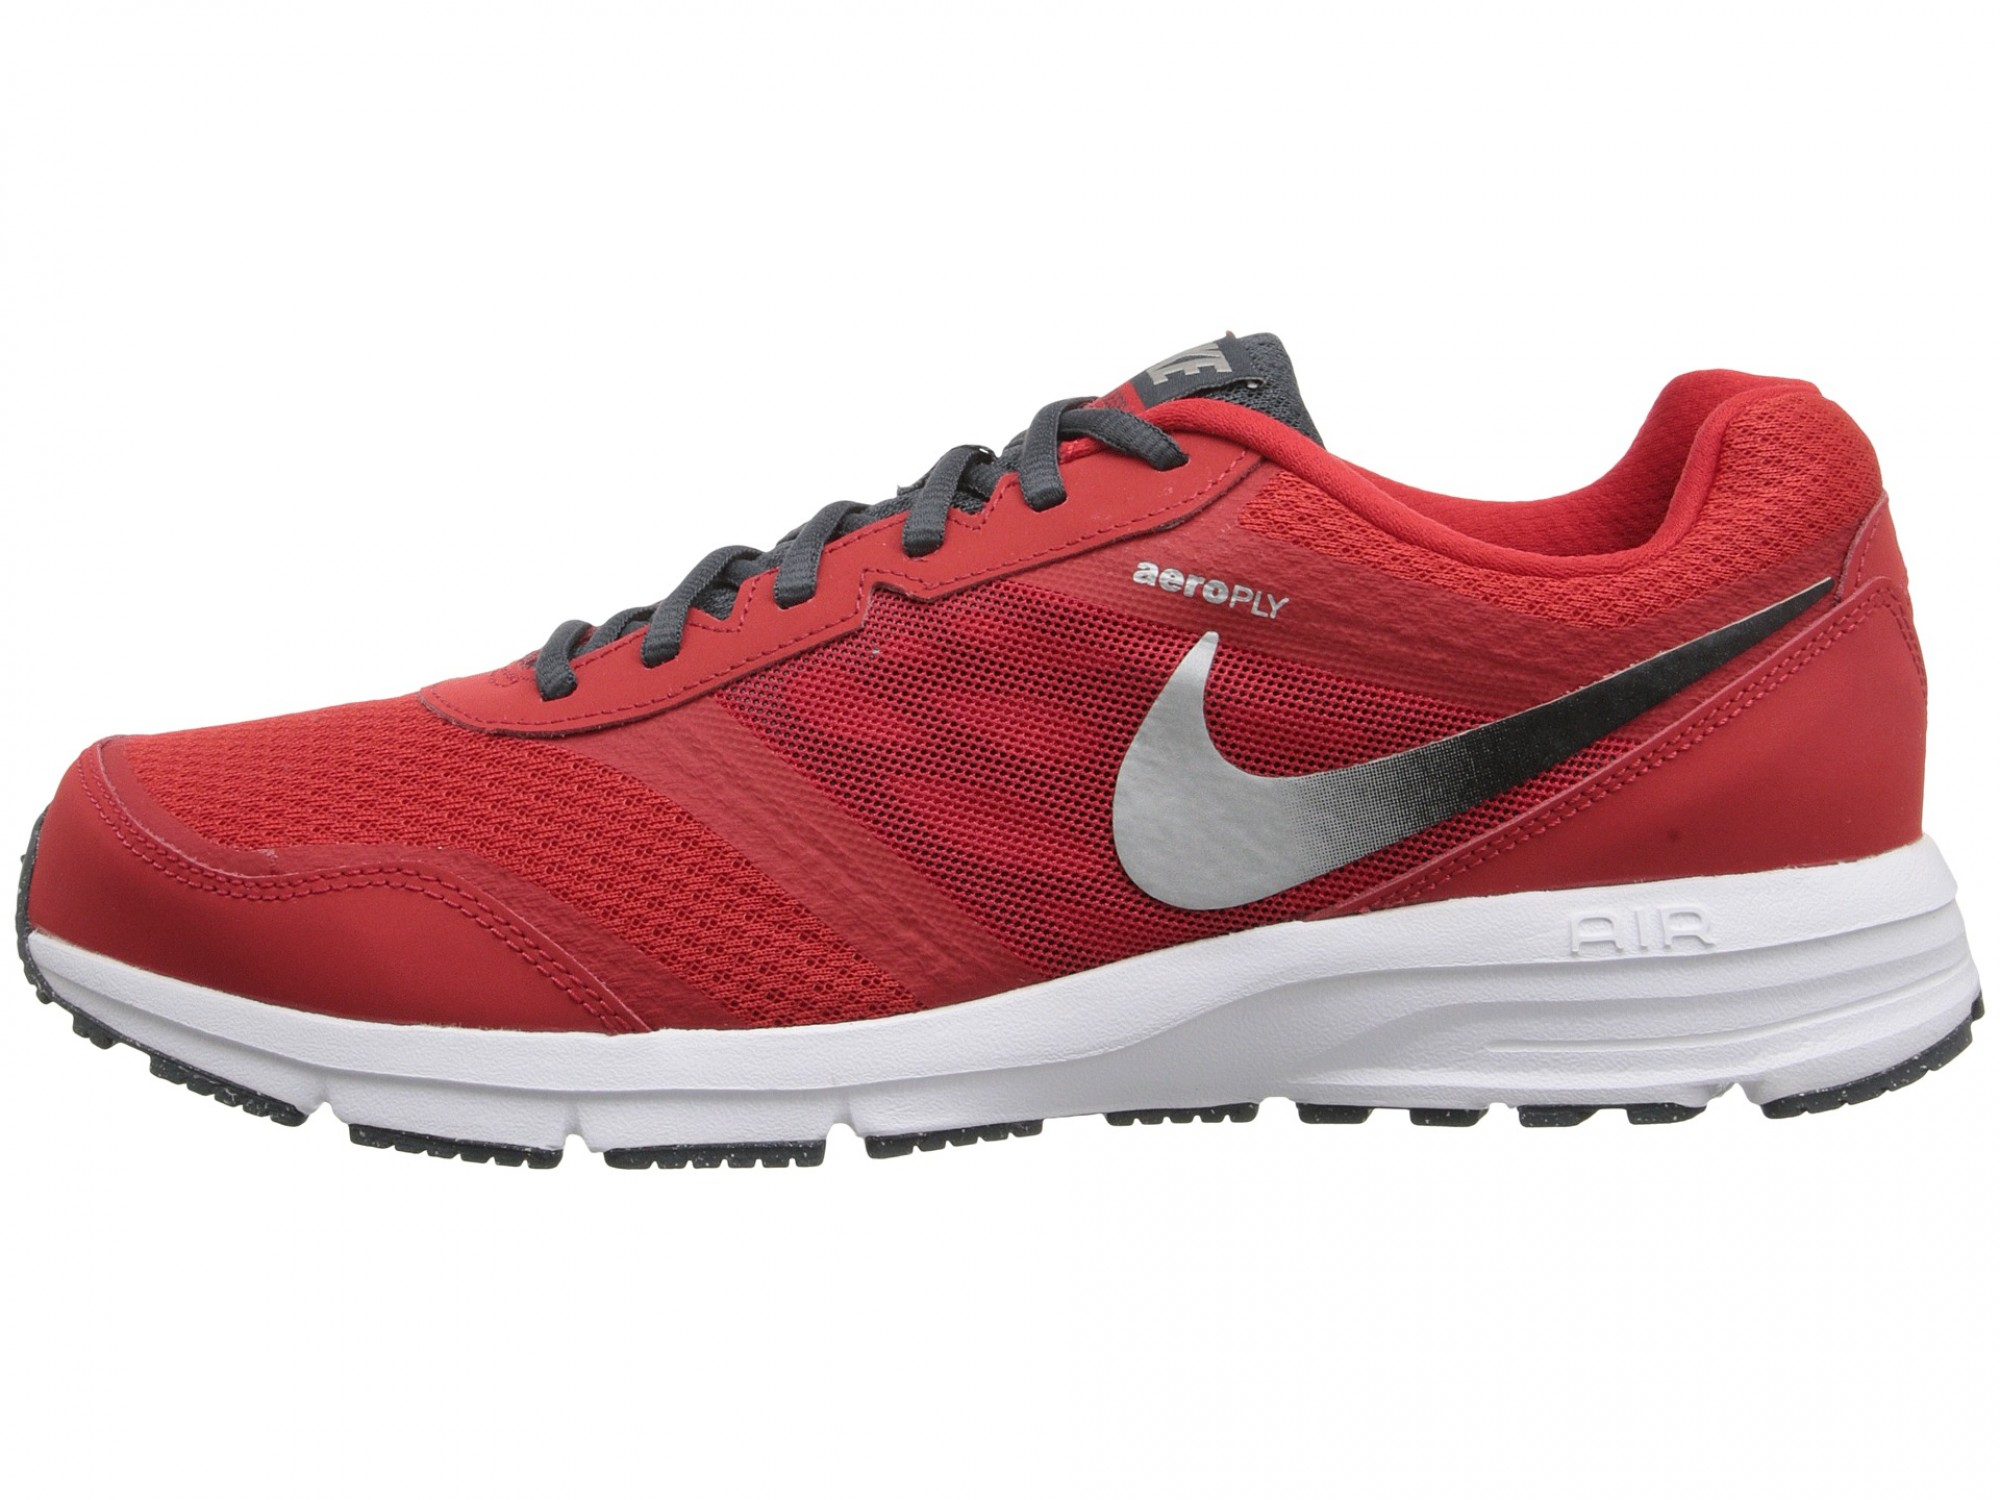 official photos 9efcd dd7ea Nike Air Relentless 4 (University Red Black Dark Magnet Grey Metallic Silver